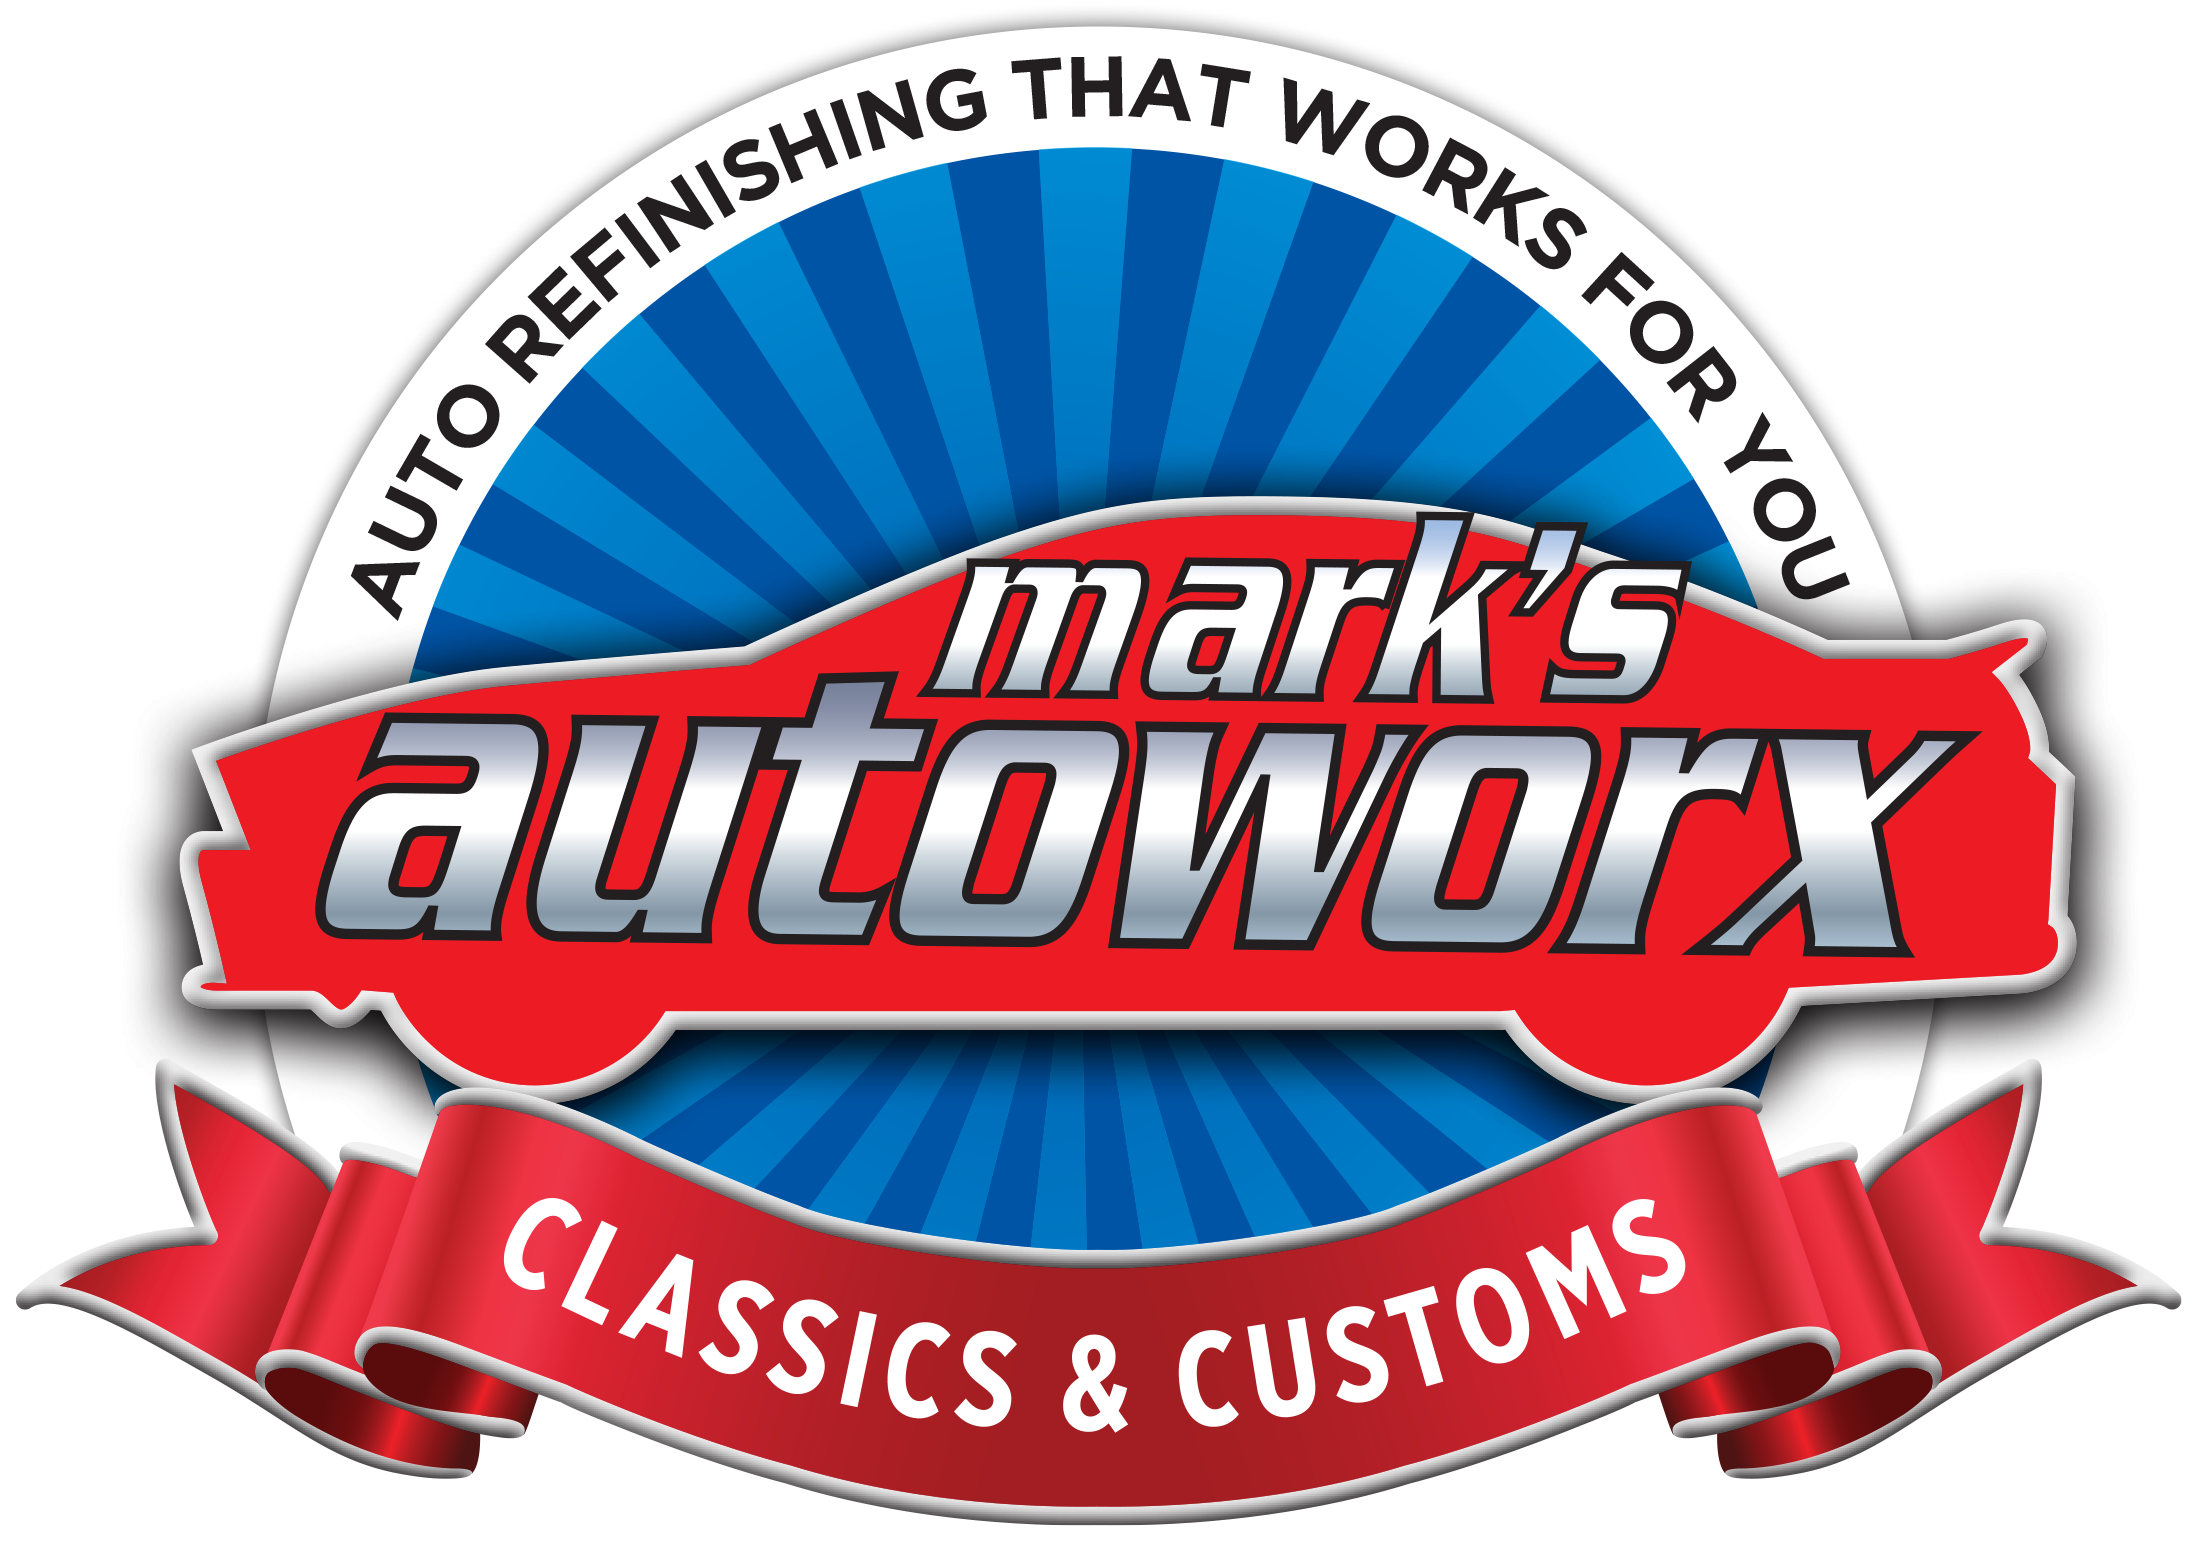 Mark's Auto Worx-We do Panel beating – light duty vehicles and trucks, Structural and major structural repairs – chassis straightening, Spray painting, Touch ups and final finishing of vehicles, Auto mechanical repairs, Auto electrical repairs, Vehicle & fleet maintenance